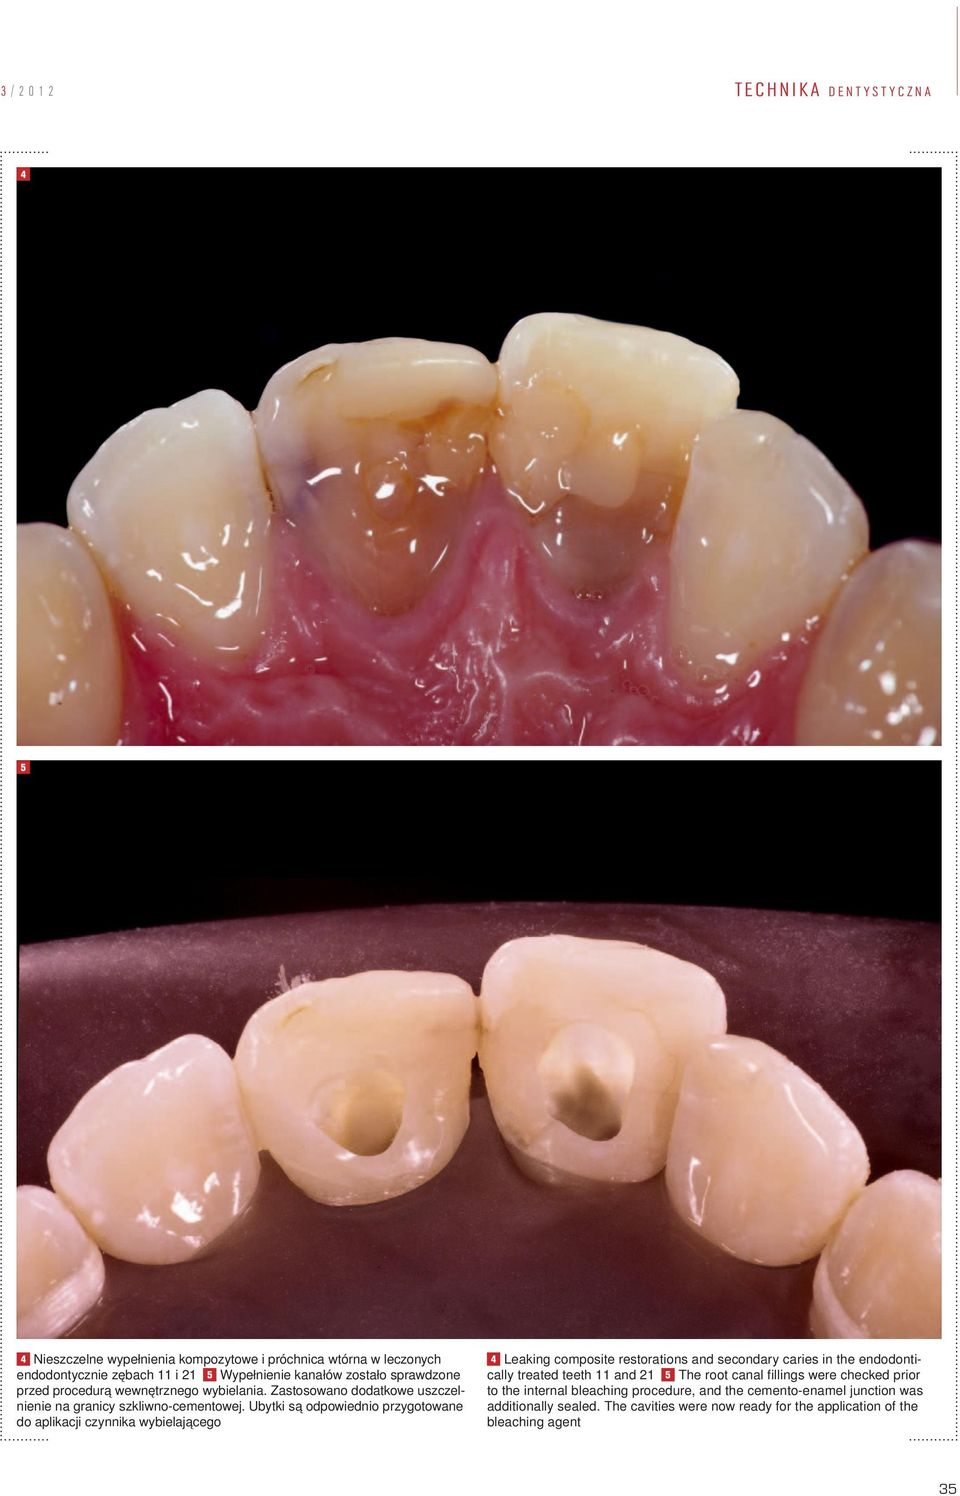 Ubytki są odpowiednio przygotowane do aplikacji czynnika wybielającego 4 Leaking composite restorations and secondary caries in the endodontically treated teeth 11